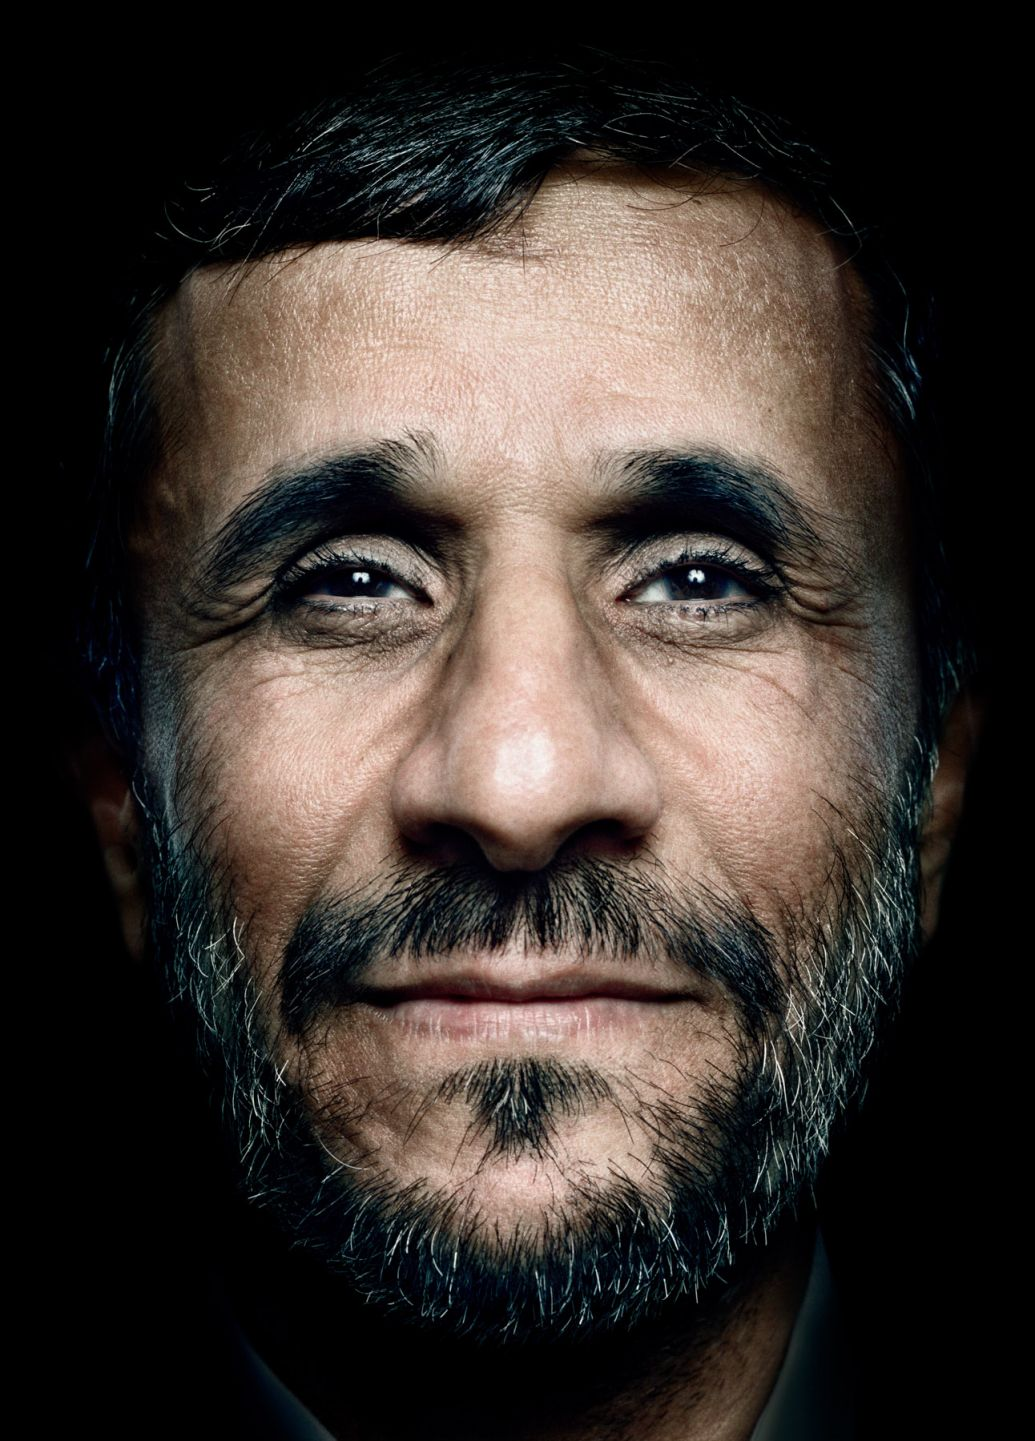 Mahmoud Ahmadinejad portrait photography